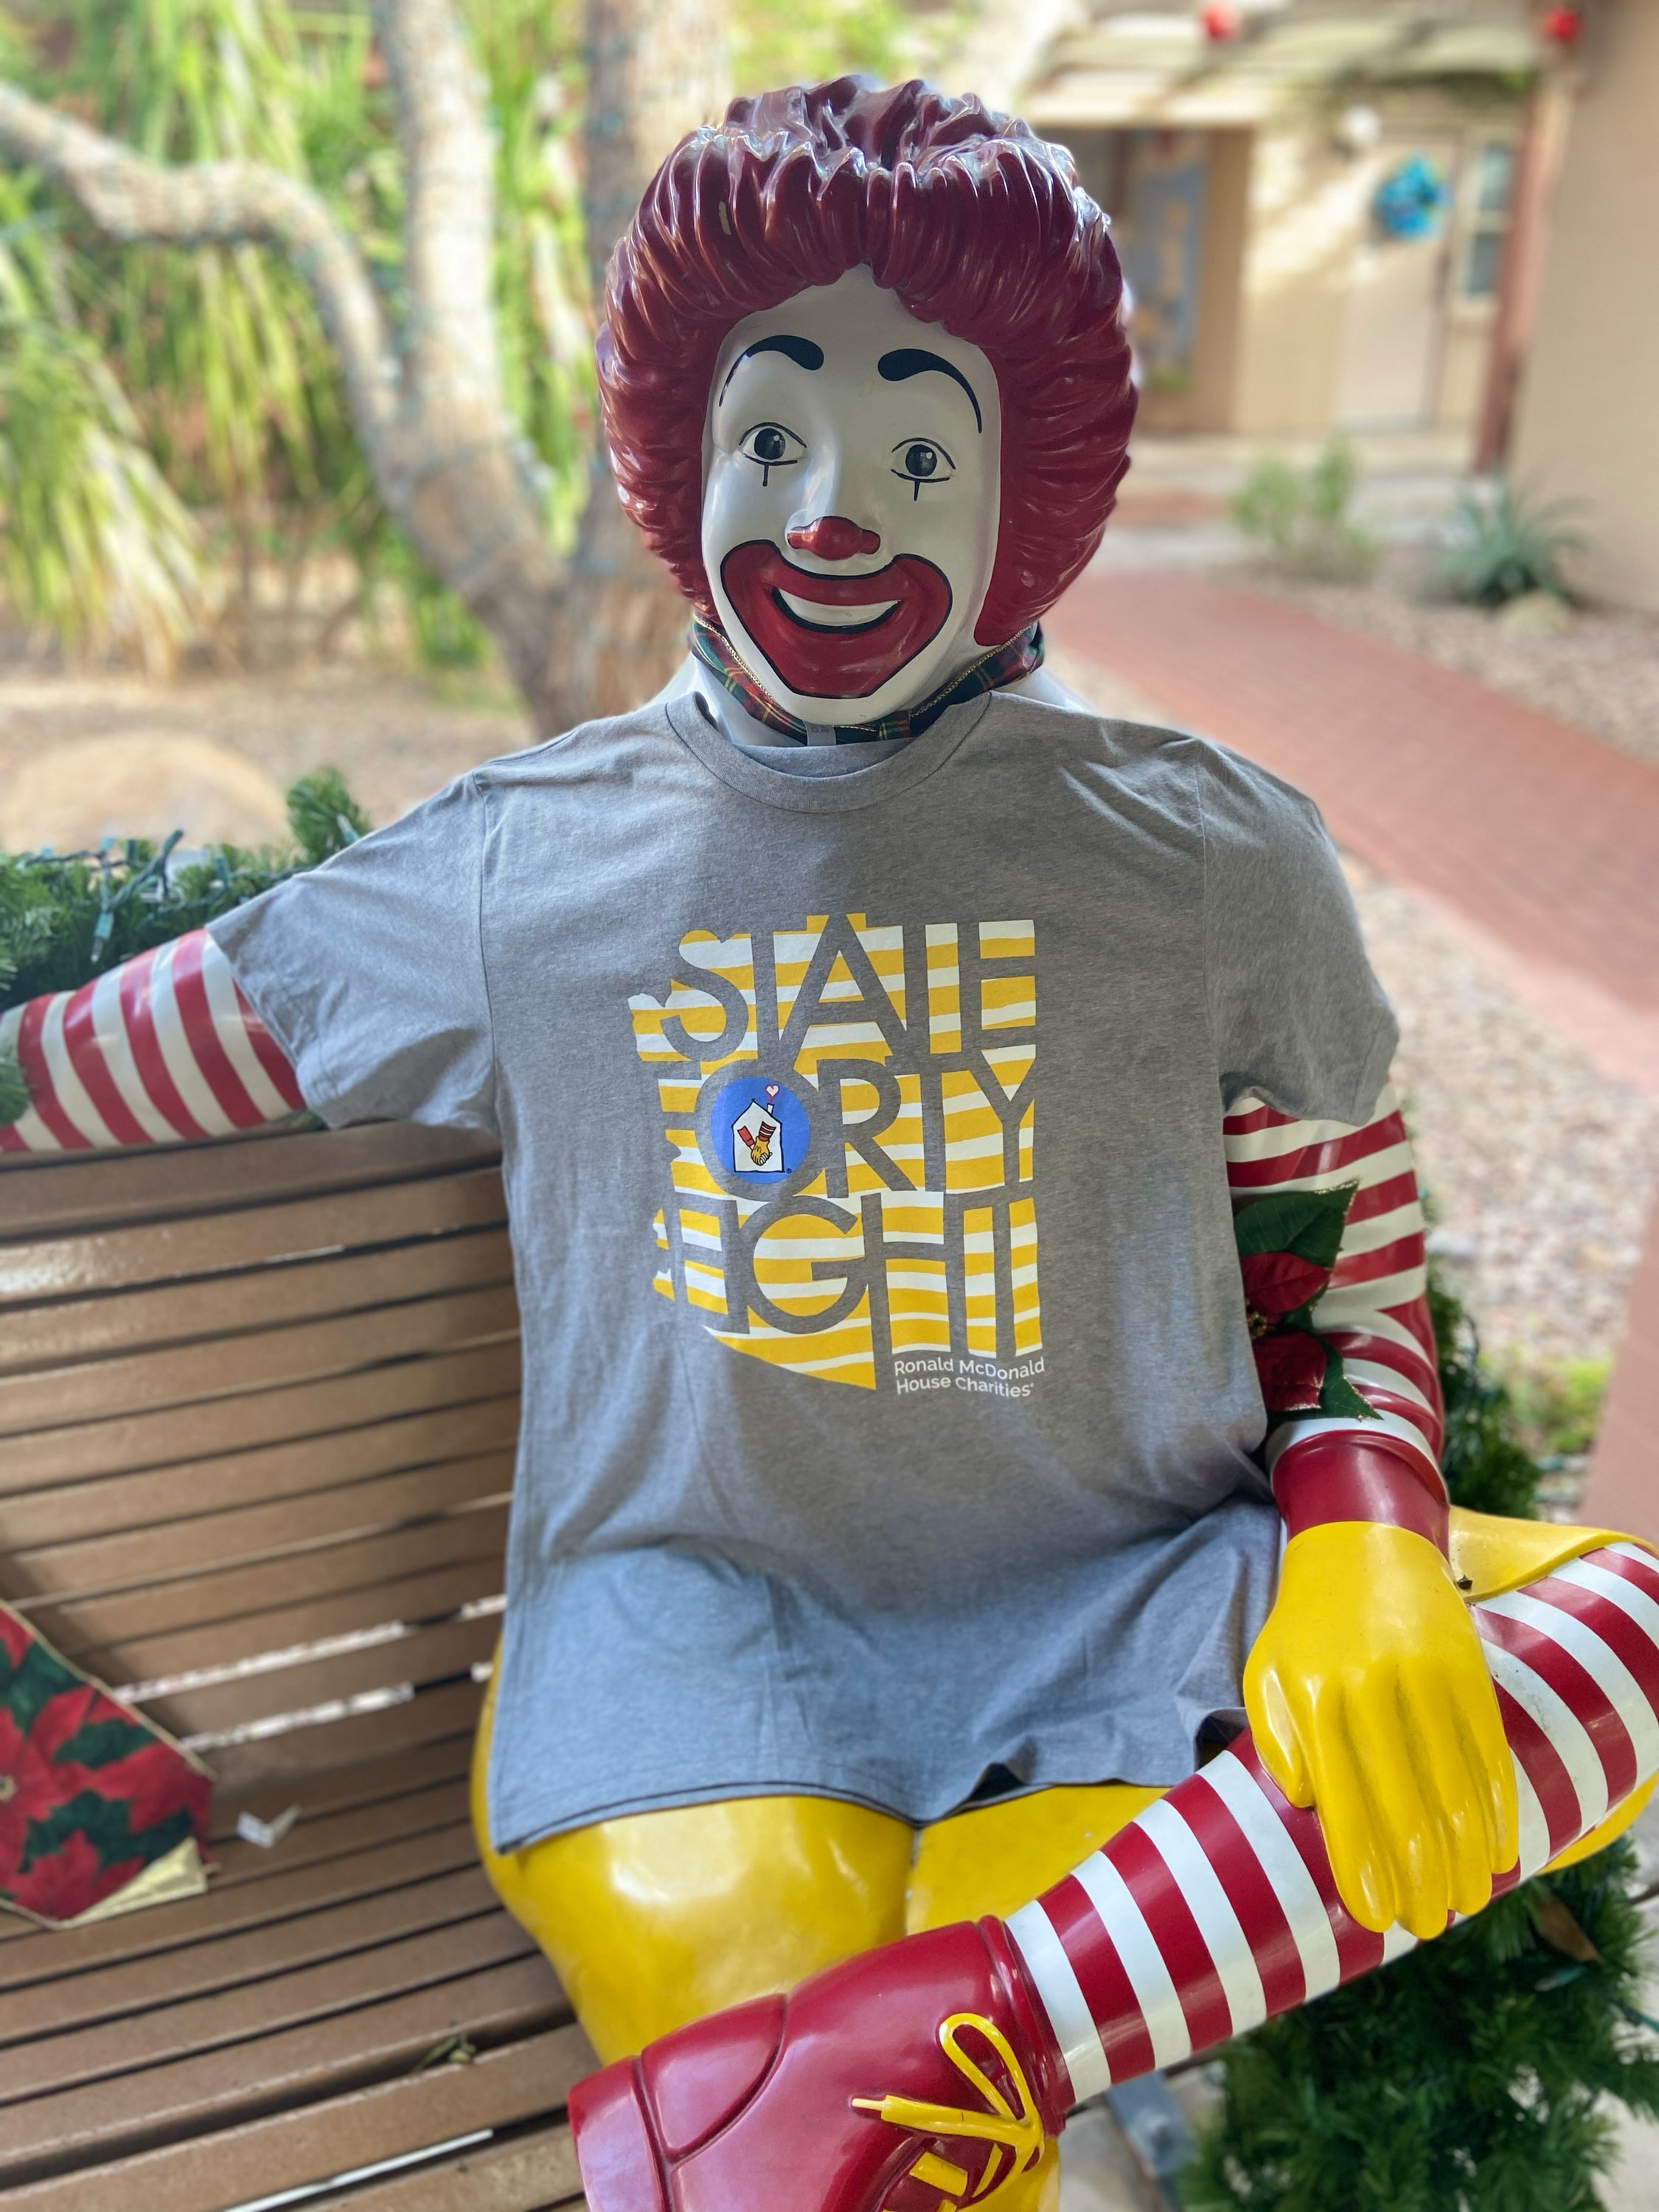 Ronald McDonald with the RMHC + State Forty Eight Shirt